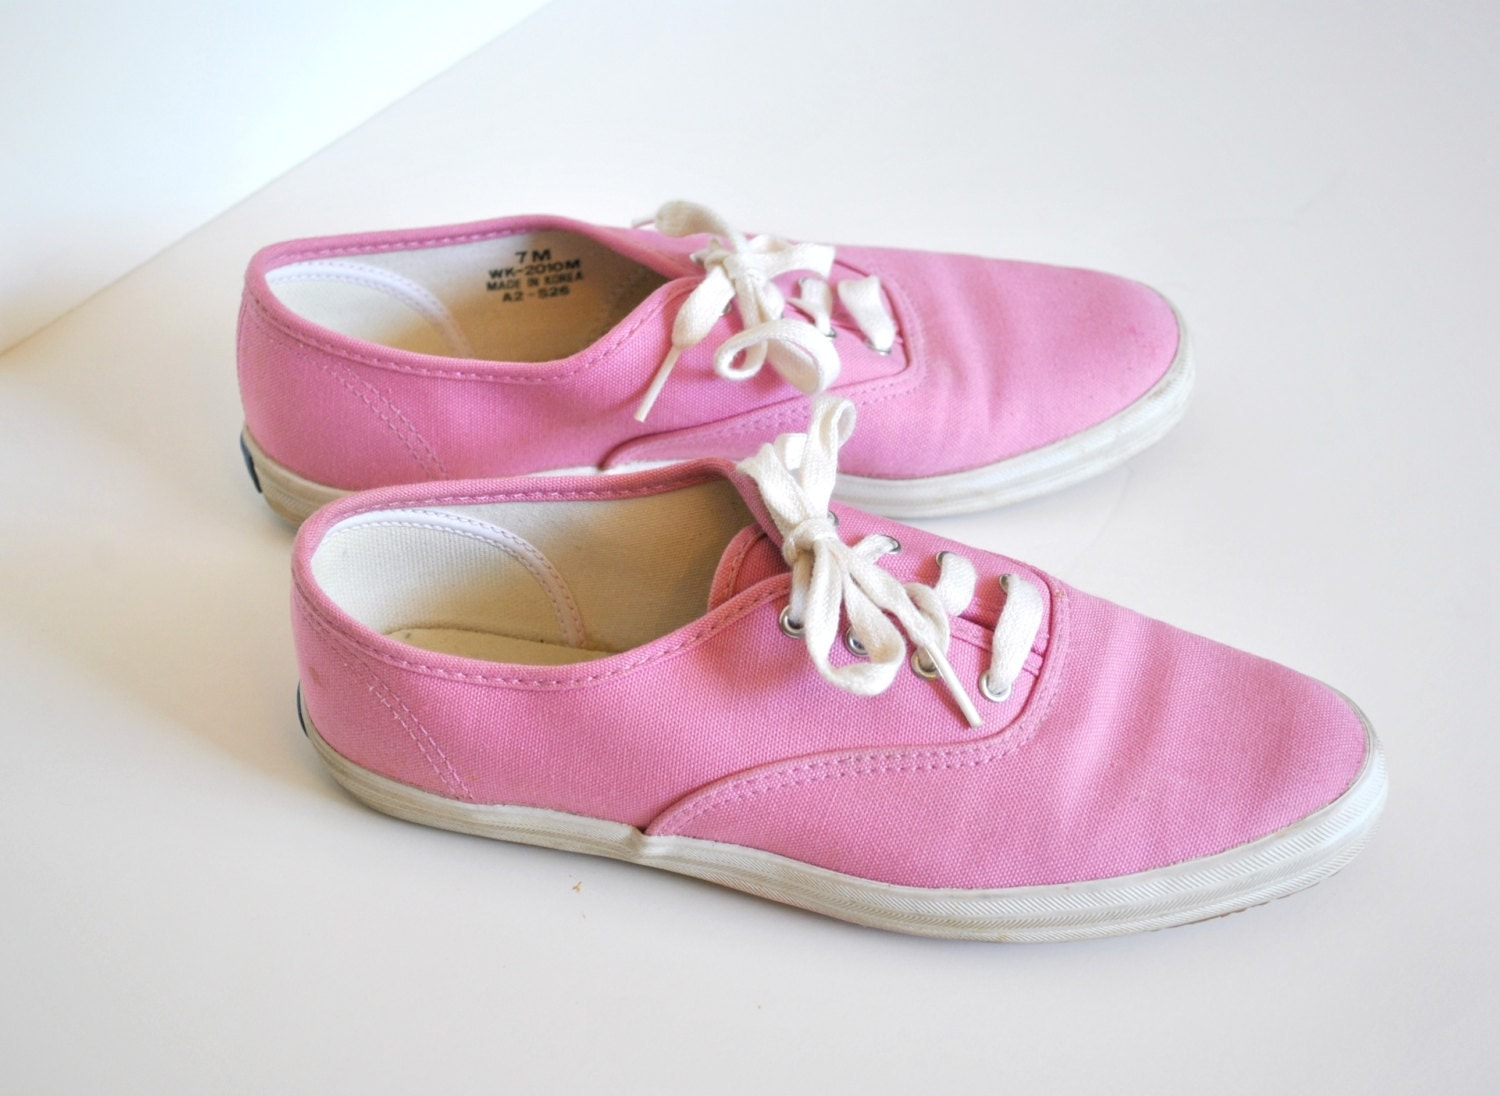 vintage pink canvas keds tennis shoes lace up by miskabelle